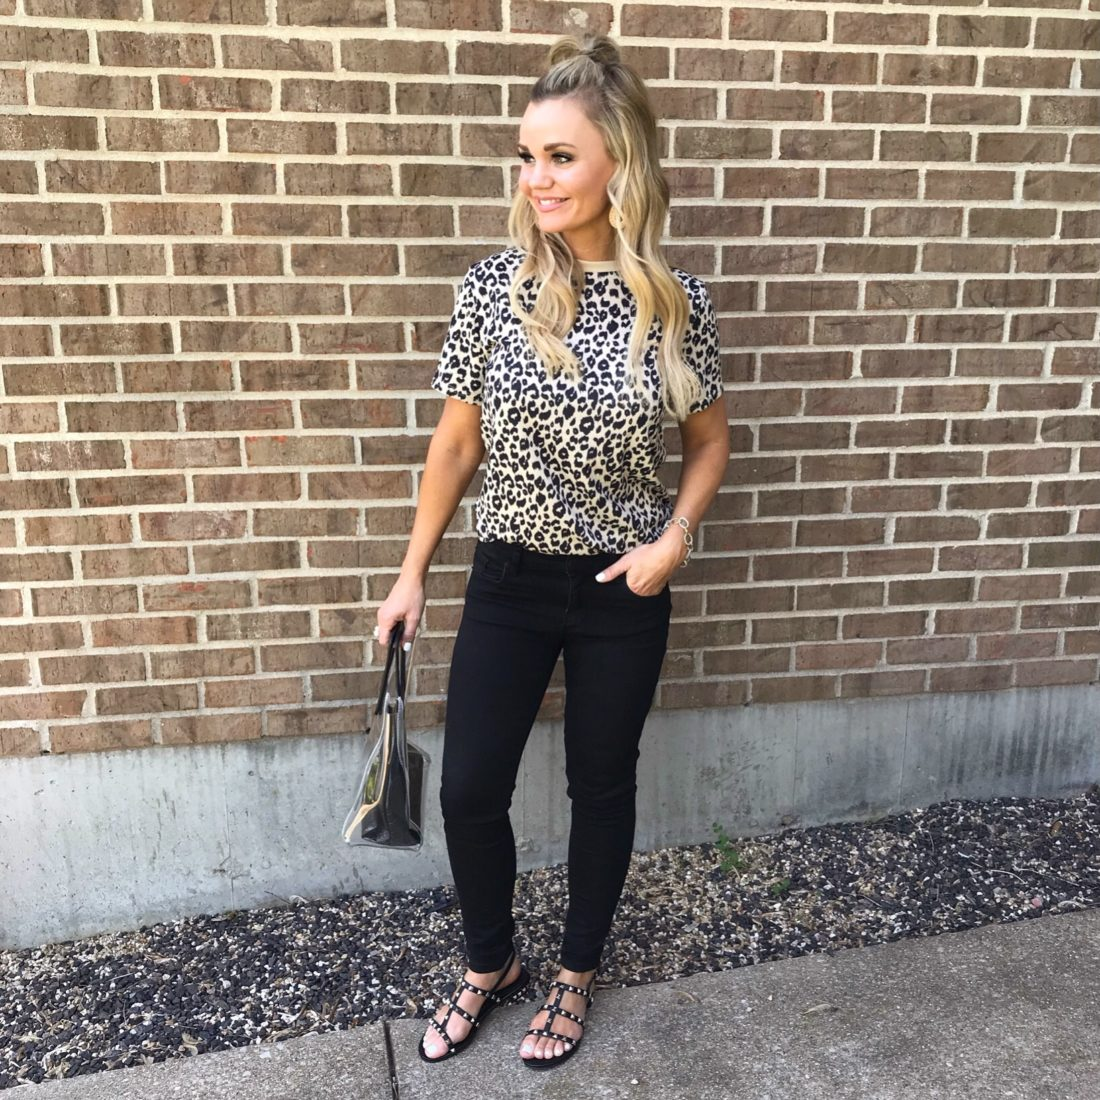 Amazon Summer Fashion Finds.Adorable Leopard outfit. #amazon #acupfullofsass